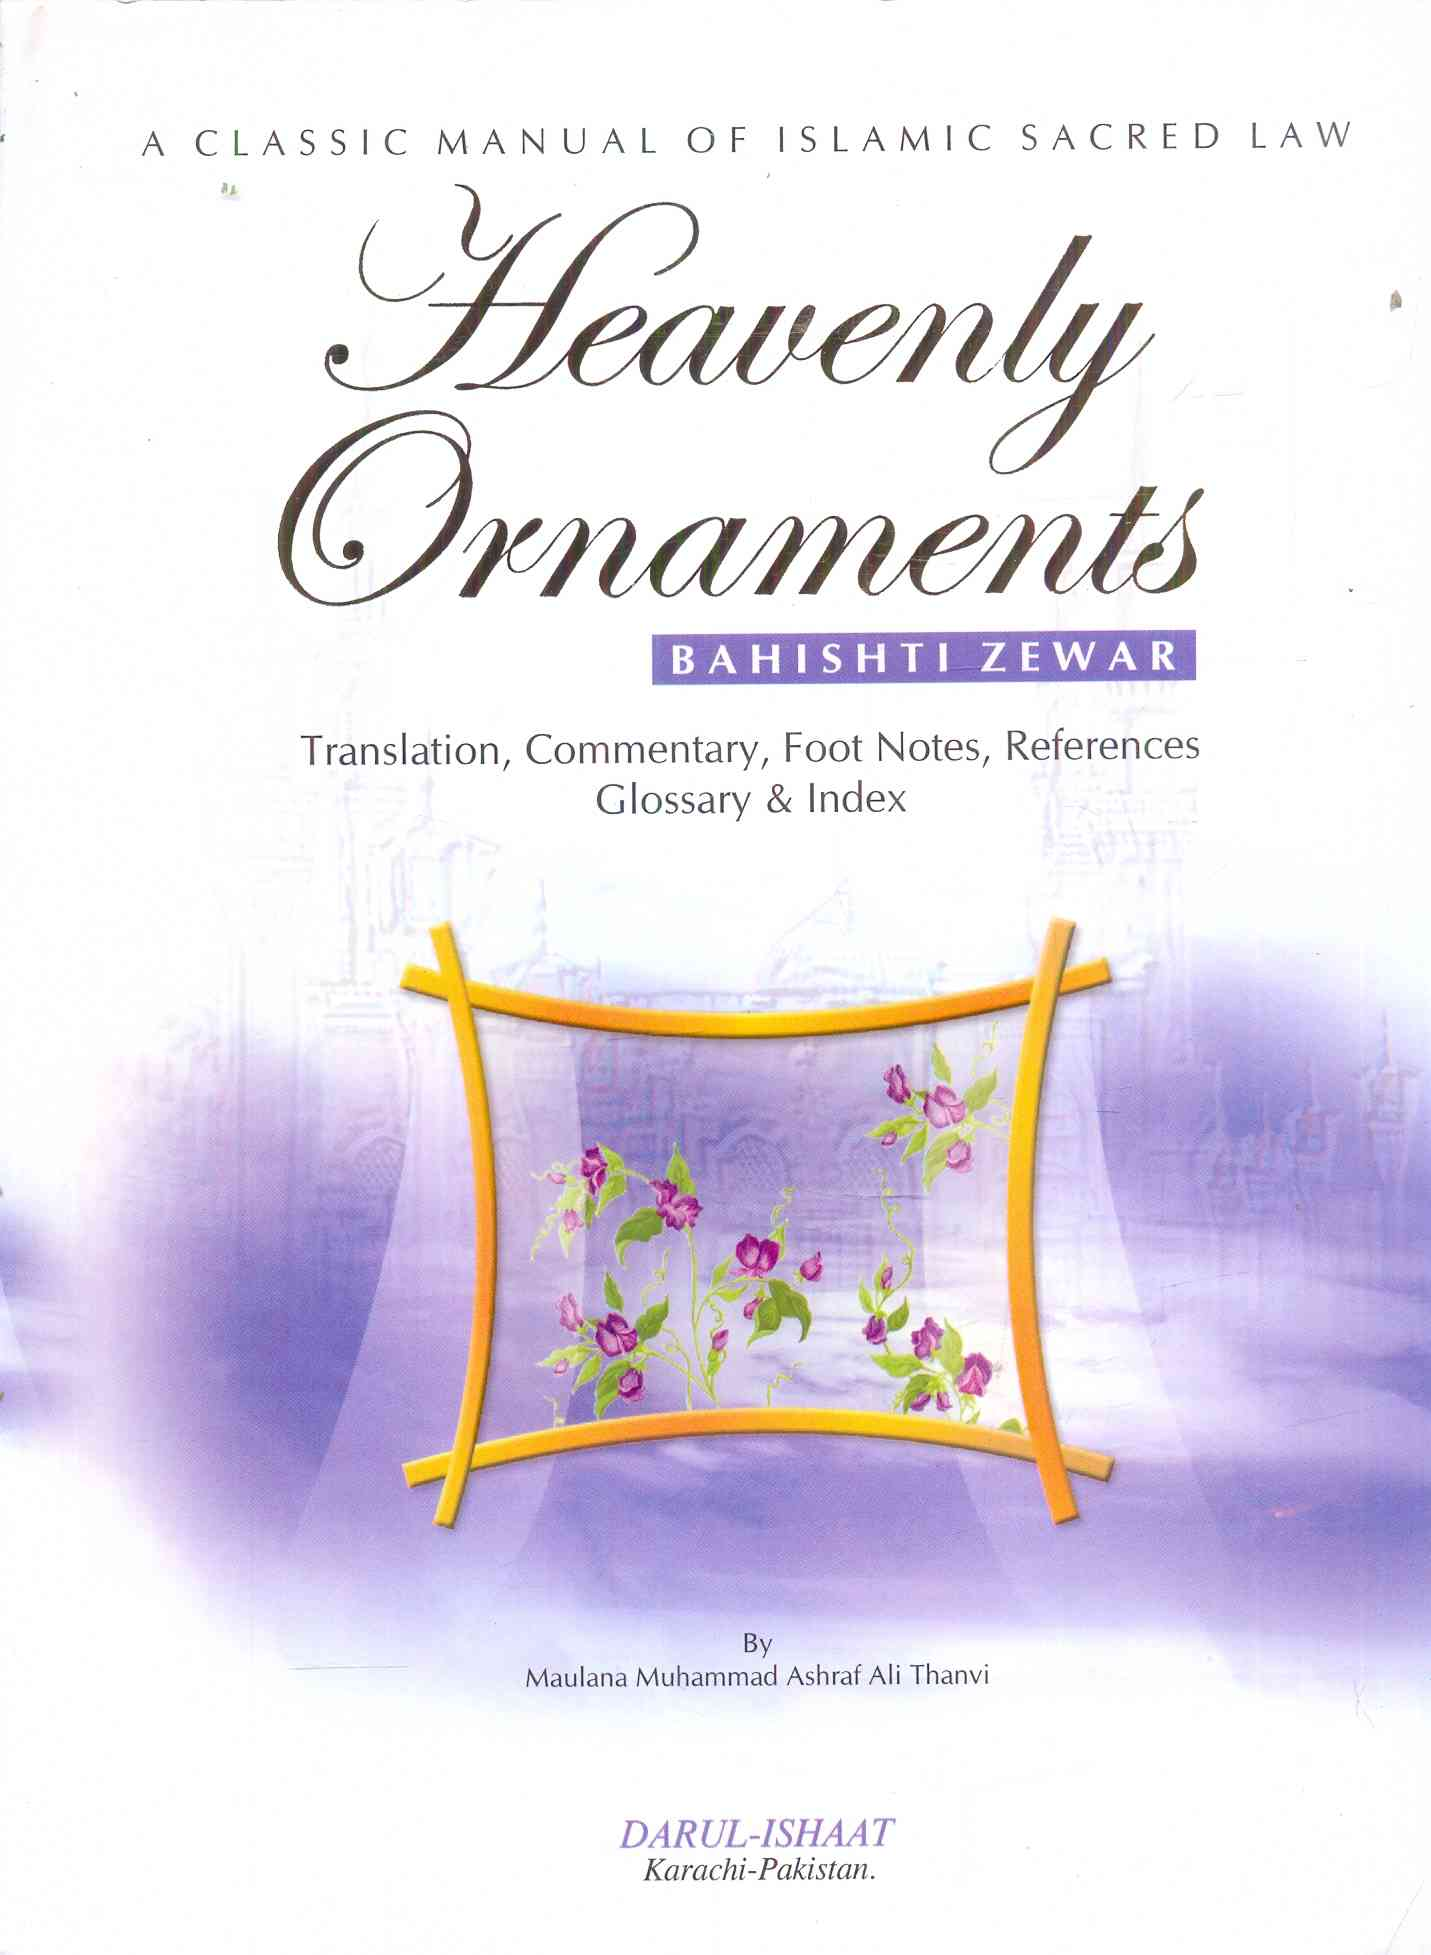 HEAVENLY ORNAMENTS B